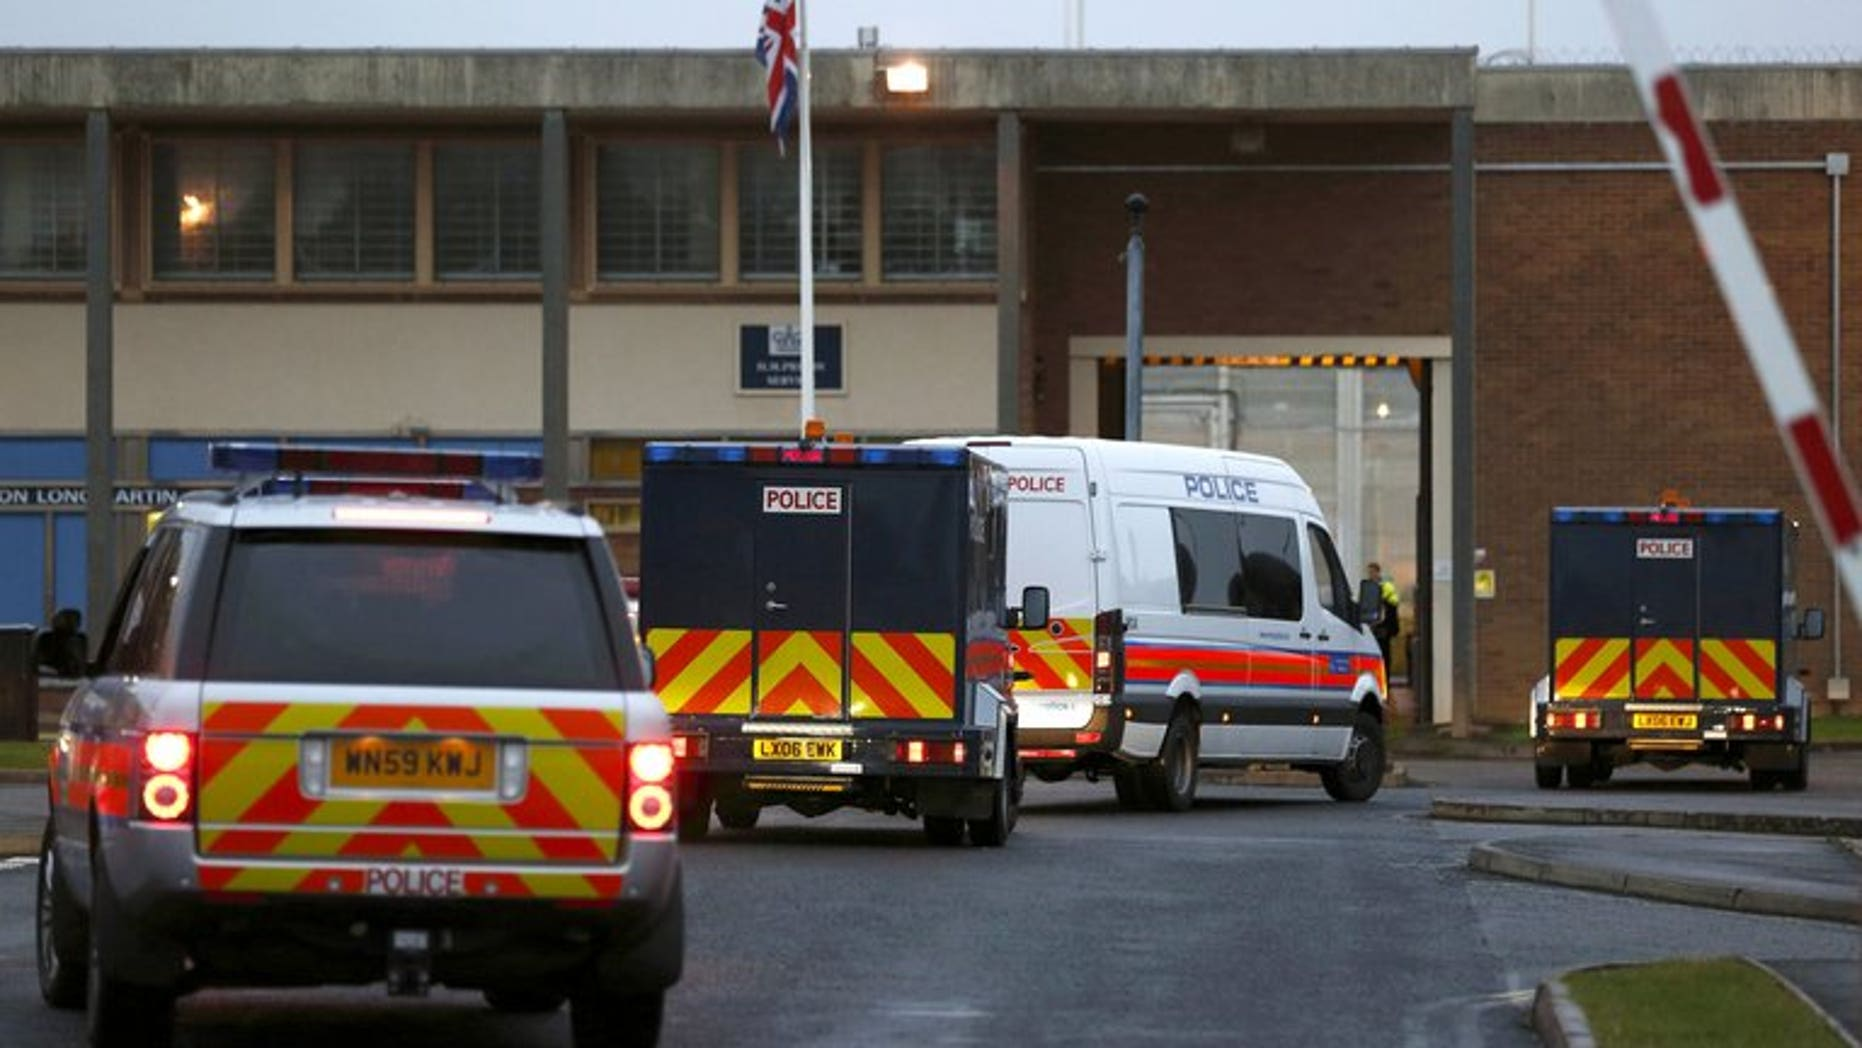 """A police motorcade, including armoured vehicles, arrives at Long Lartin prison in central England, on October 5, 2012. Europe's rights court on Tuesday ruled that whole-life prison terms imposed in Britain amounted to """"inhuman and degrading"""" treatment, in a case brought by three of the country's most notorious murderers."""